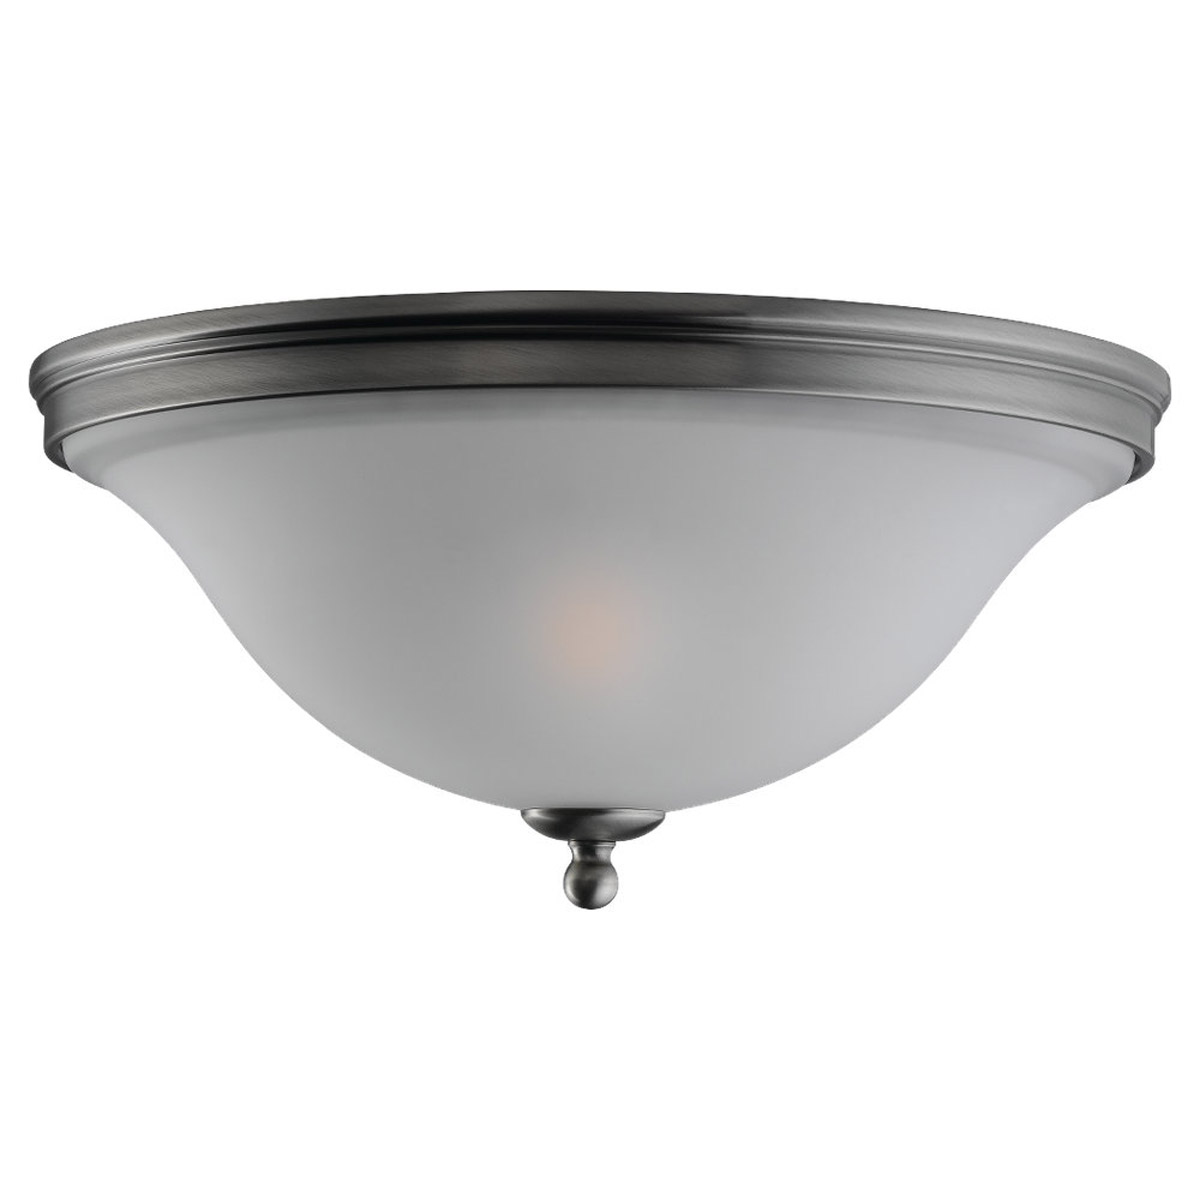 Sea Gull Lighting Gladstone 2 Light Flush Mount in Antique Brushed Nickel 75850-965